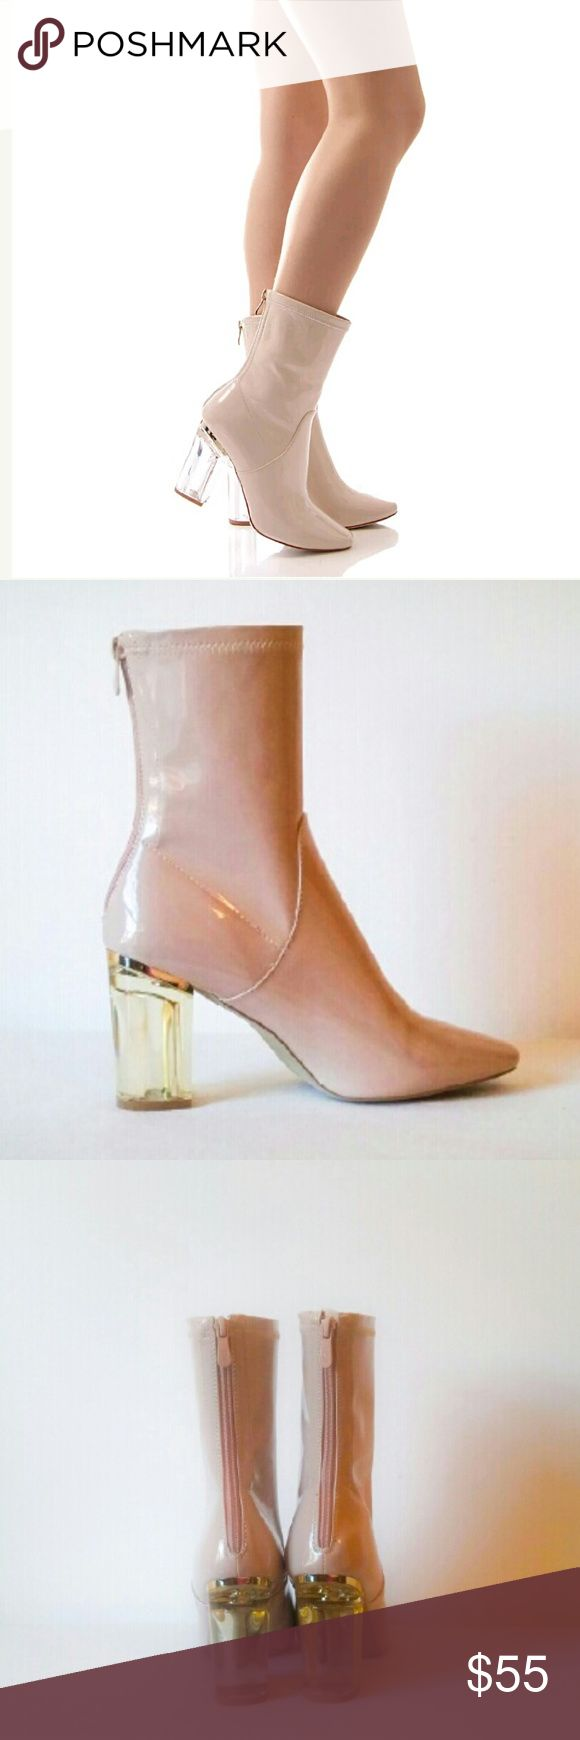 """New! Clear Heeled Ankle Boots Clear Heel Size 8 New with tags! These are the gorgeous lucite heel booties, lucite heel ankle boots clear heel """"Perspex Heels"""" made famous by the designer Christian Dior clear heel boot! Perfect for holiday season! An awesome style statement in nude patent leather that matches everything! These boots feature patent construction, closed toe, sleek curvy fit, back zipper closure and amazing clear block heels! Brand new excellent condition with a barely noticeable…"""